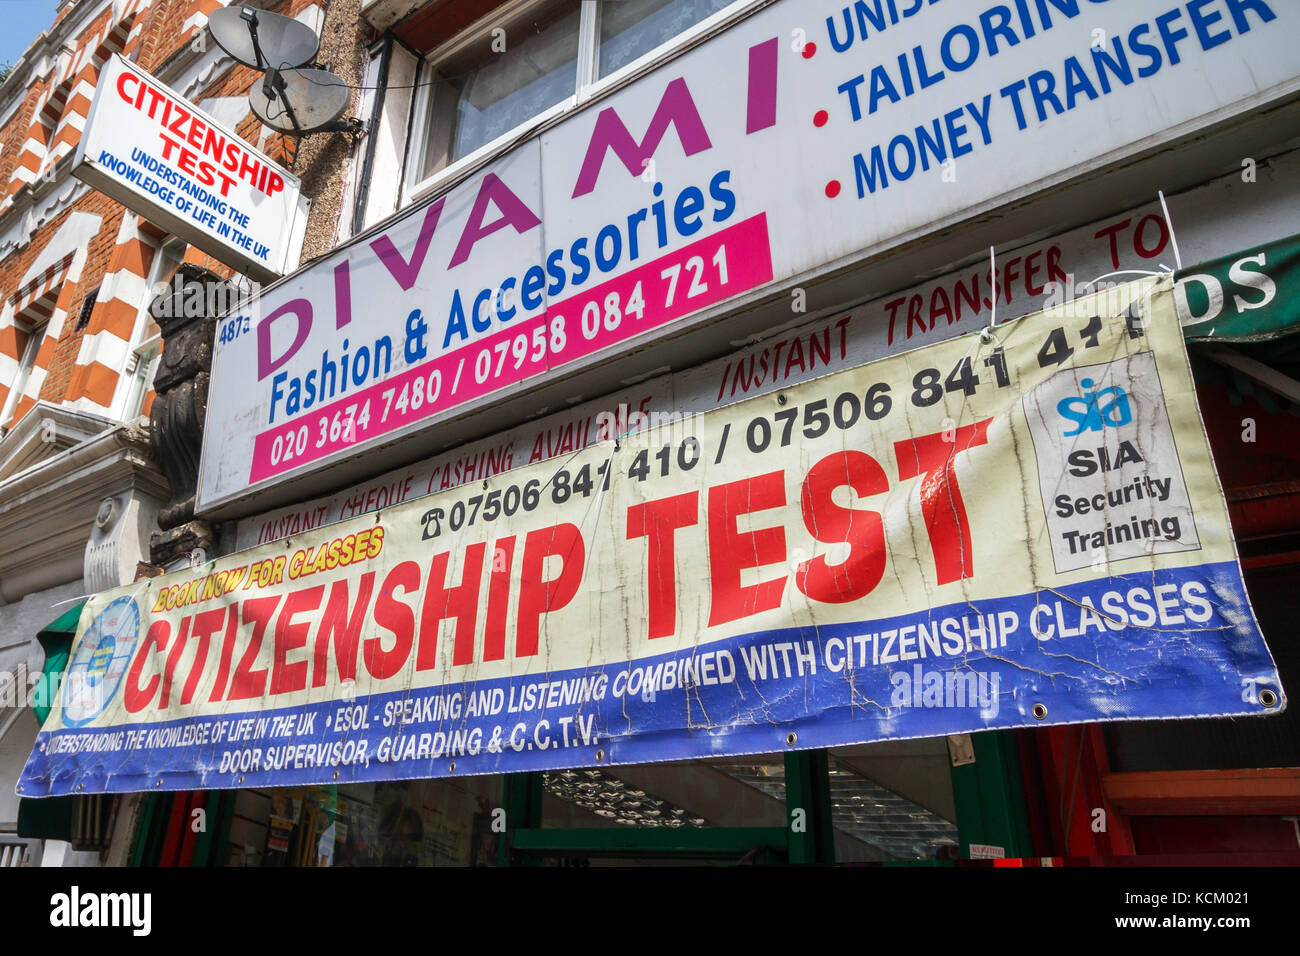 UK Citizenship test and classes advertised on a high street in South East London. - Stock Image